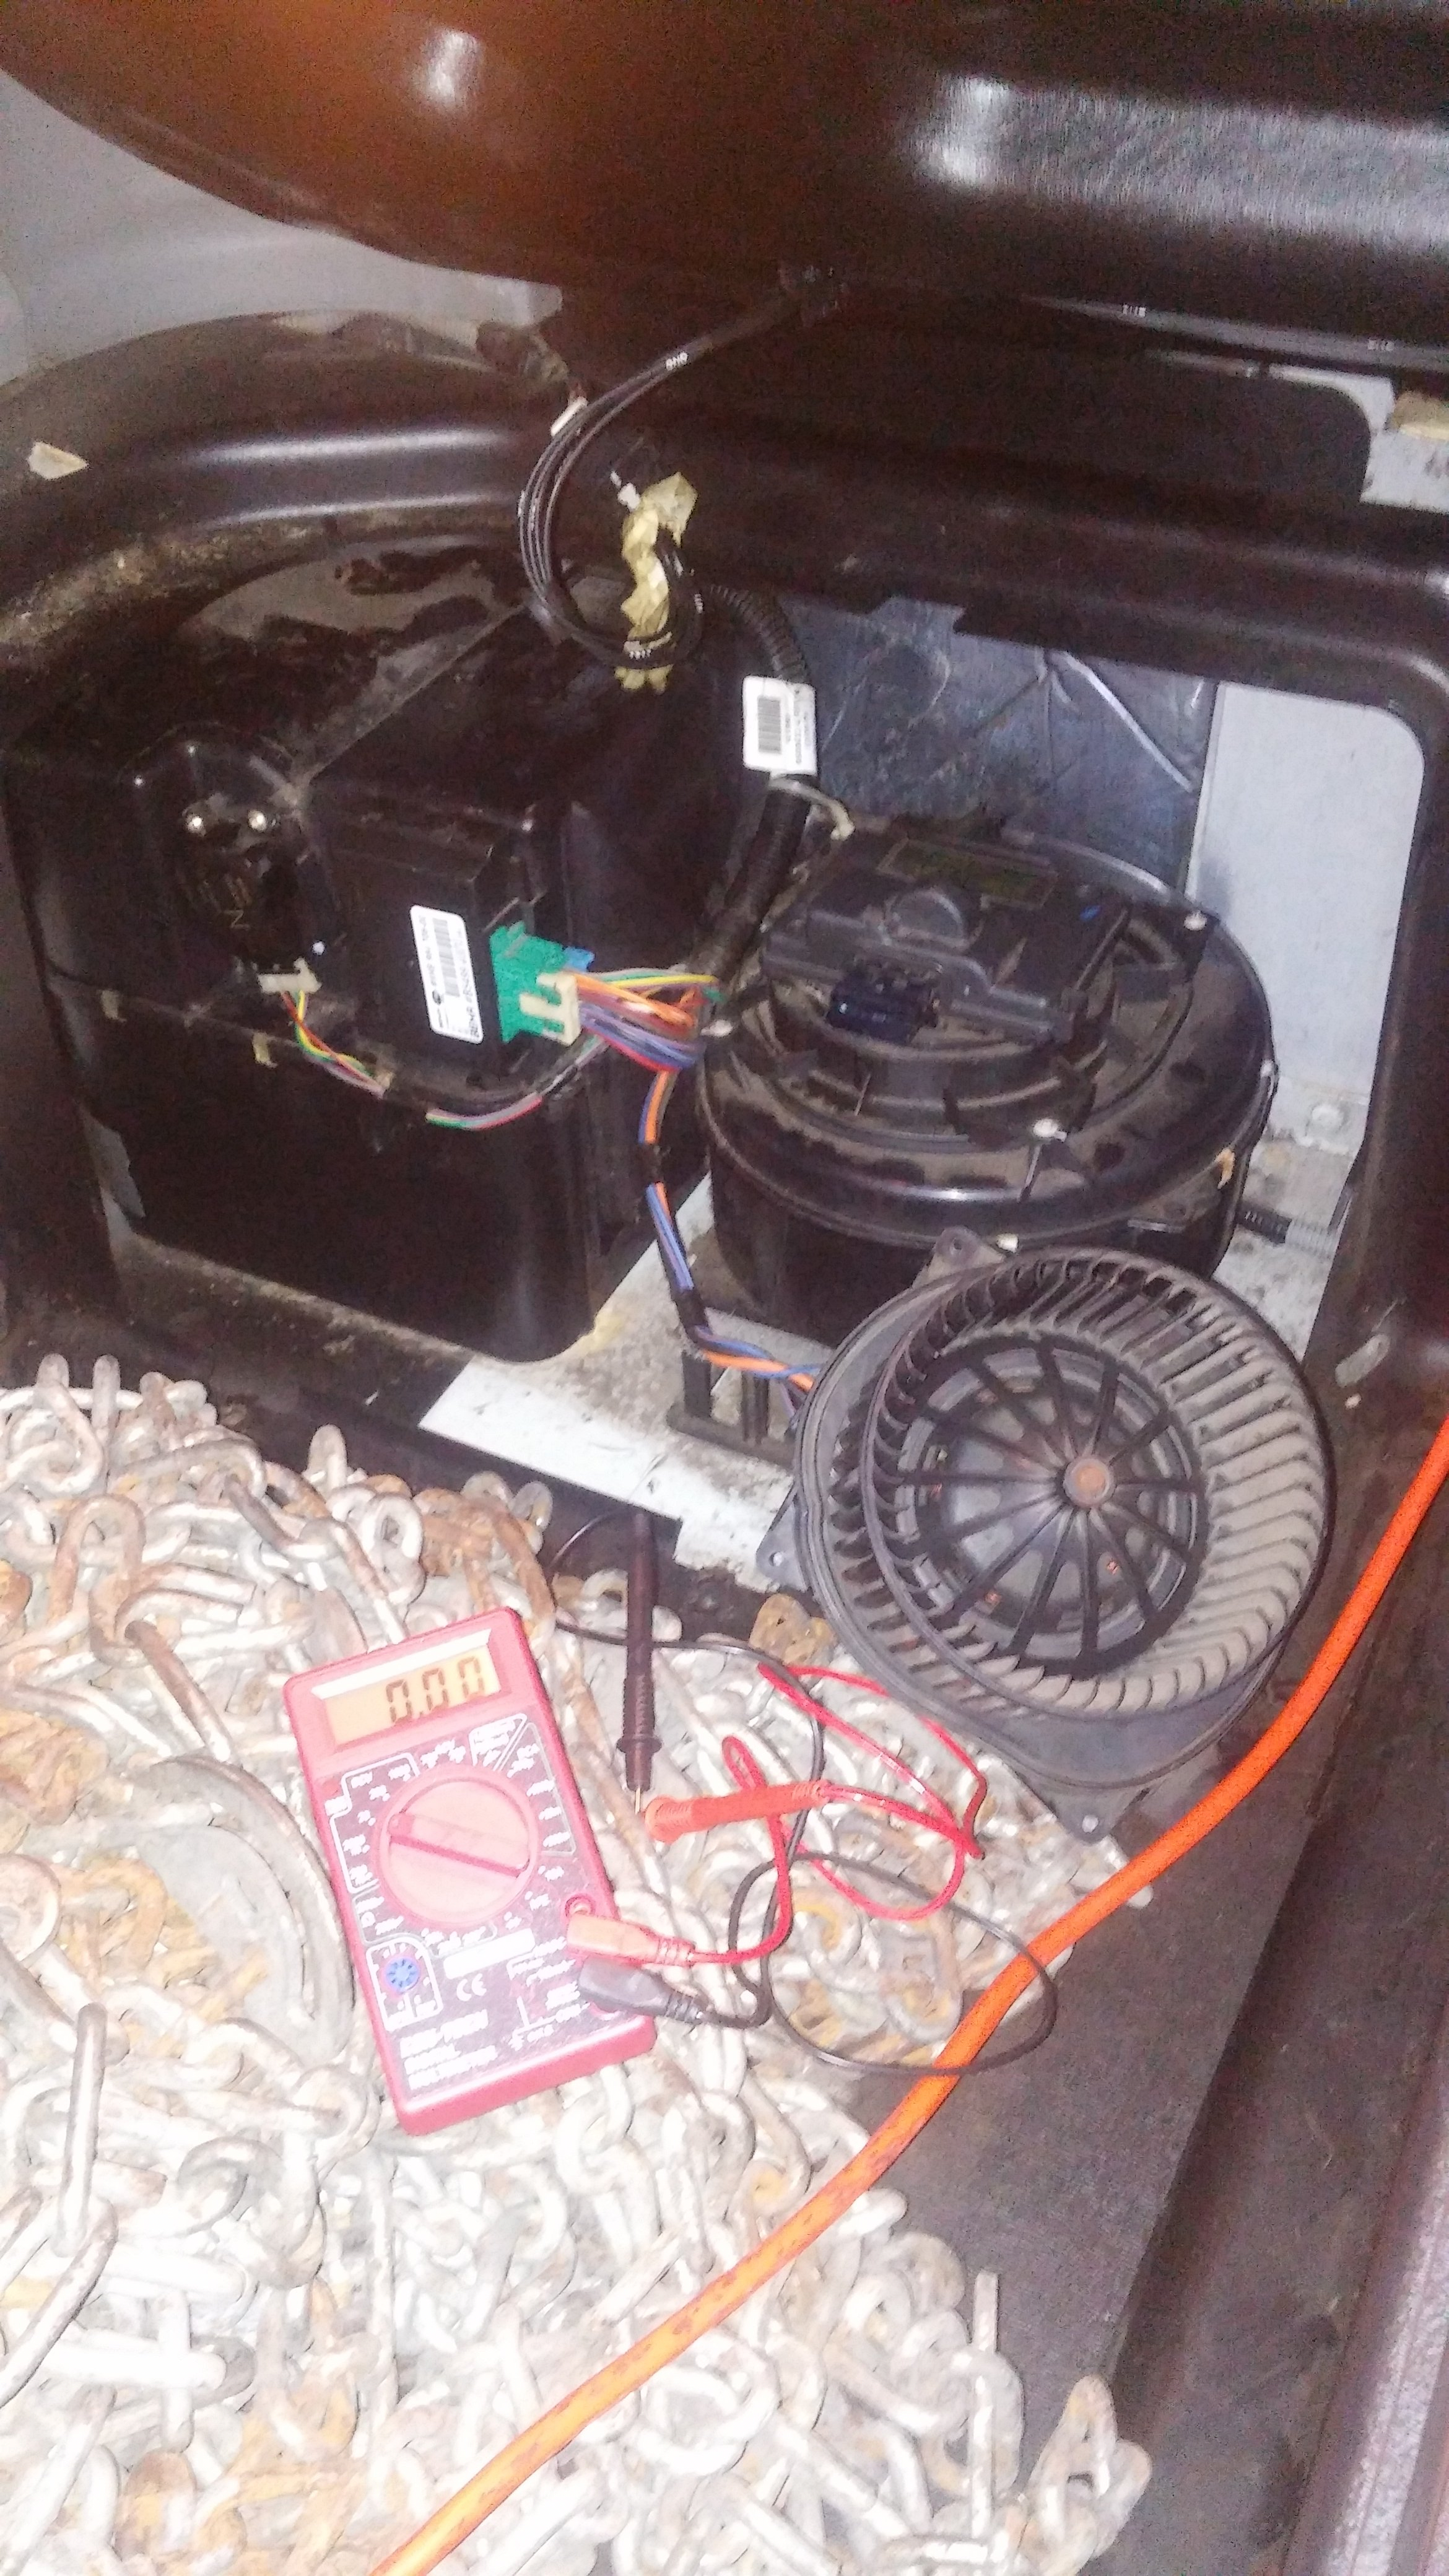 I need help with mi freightliner, My blower is not working, My